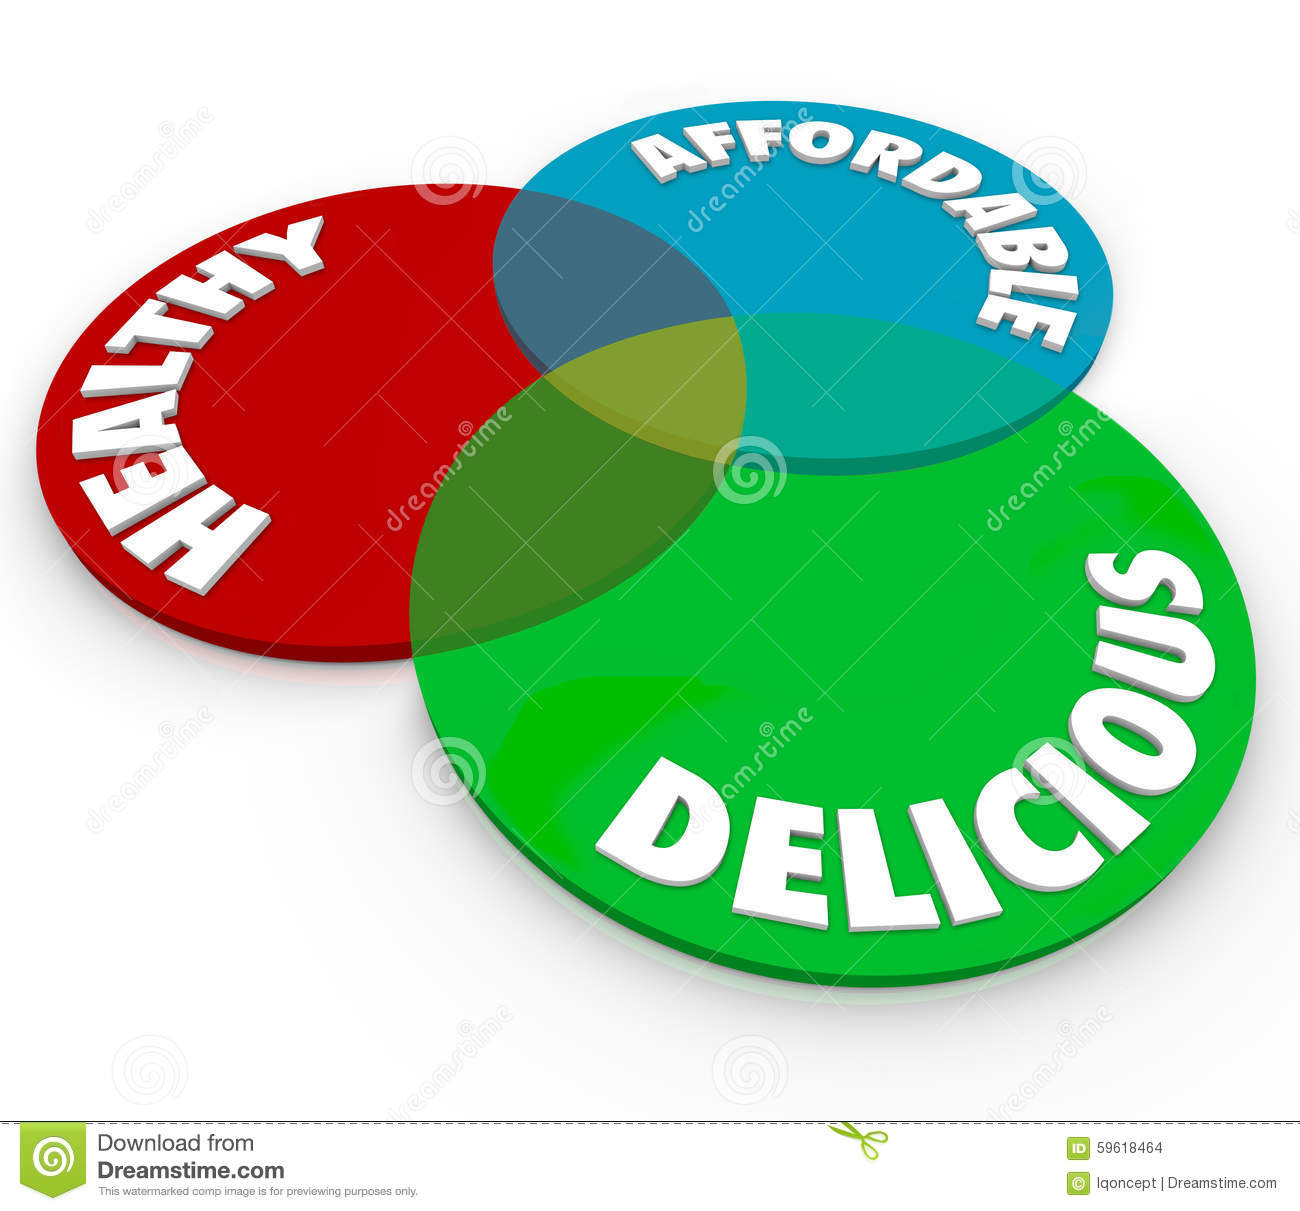 hight resolution of healthy delicious affordable venn diagram food eating nutrition